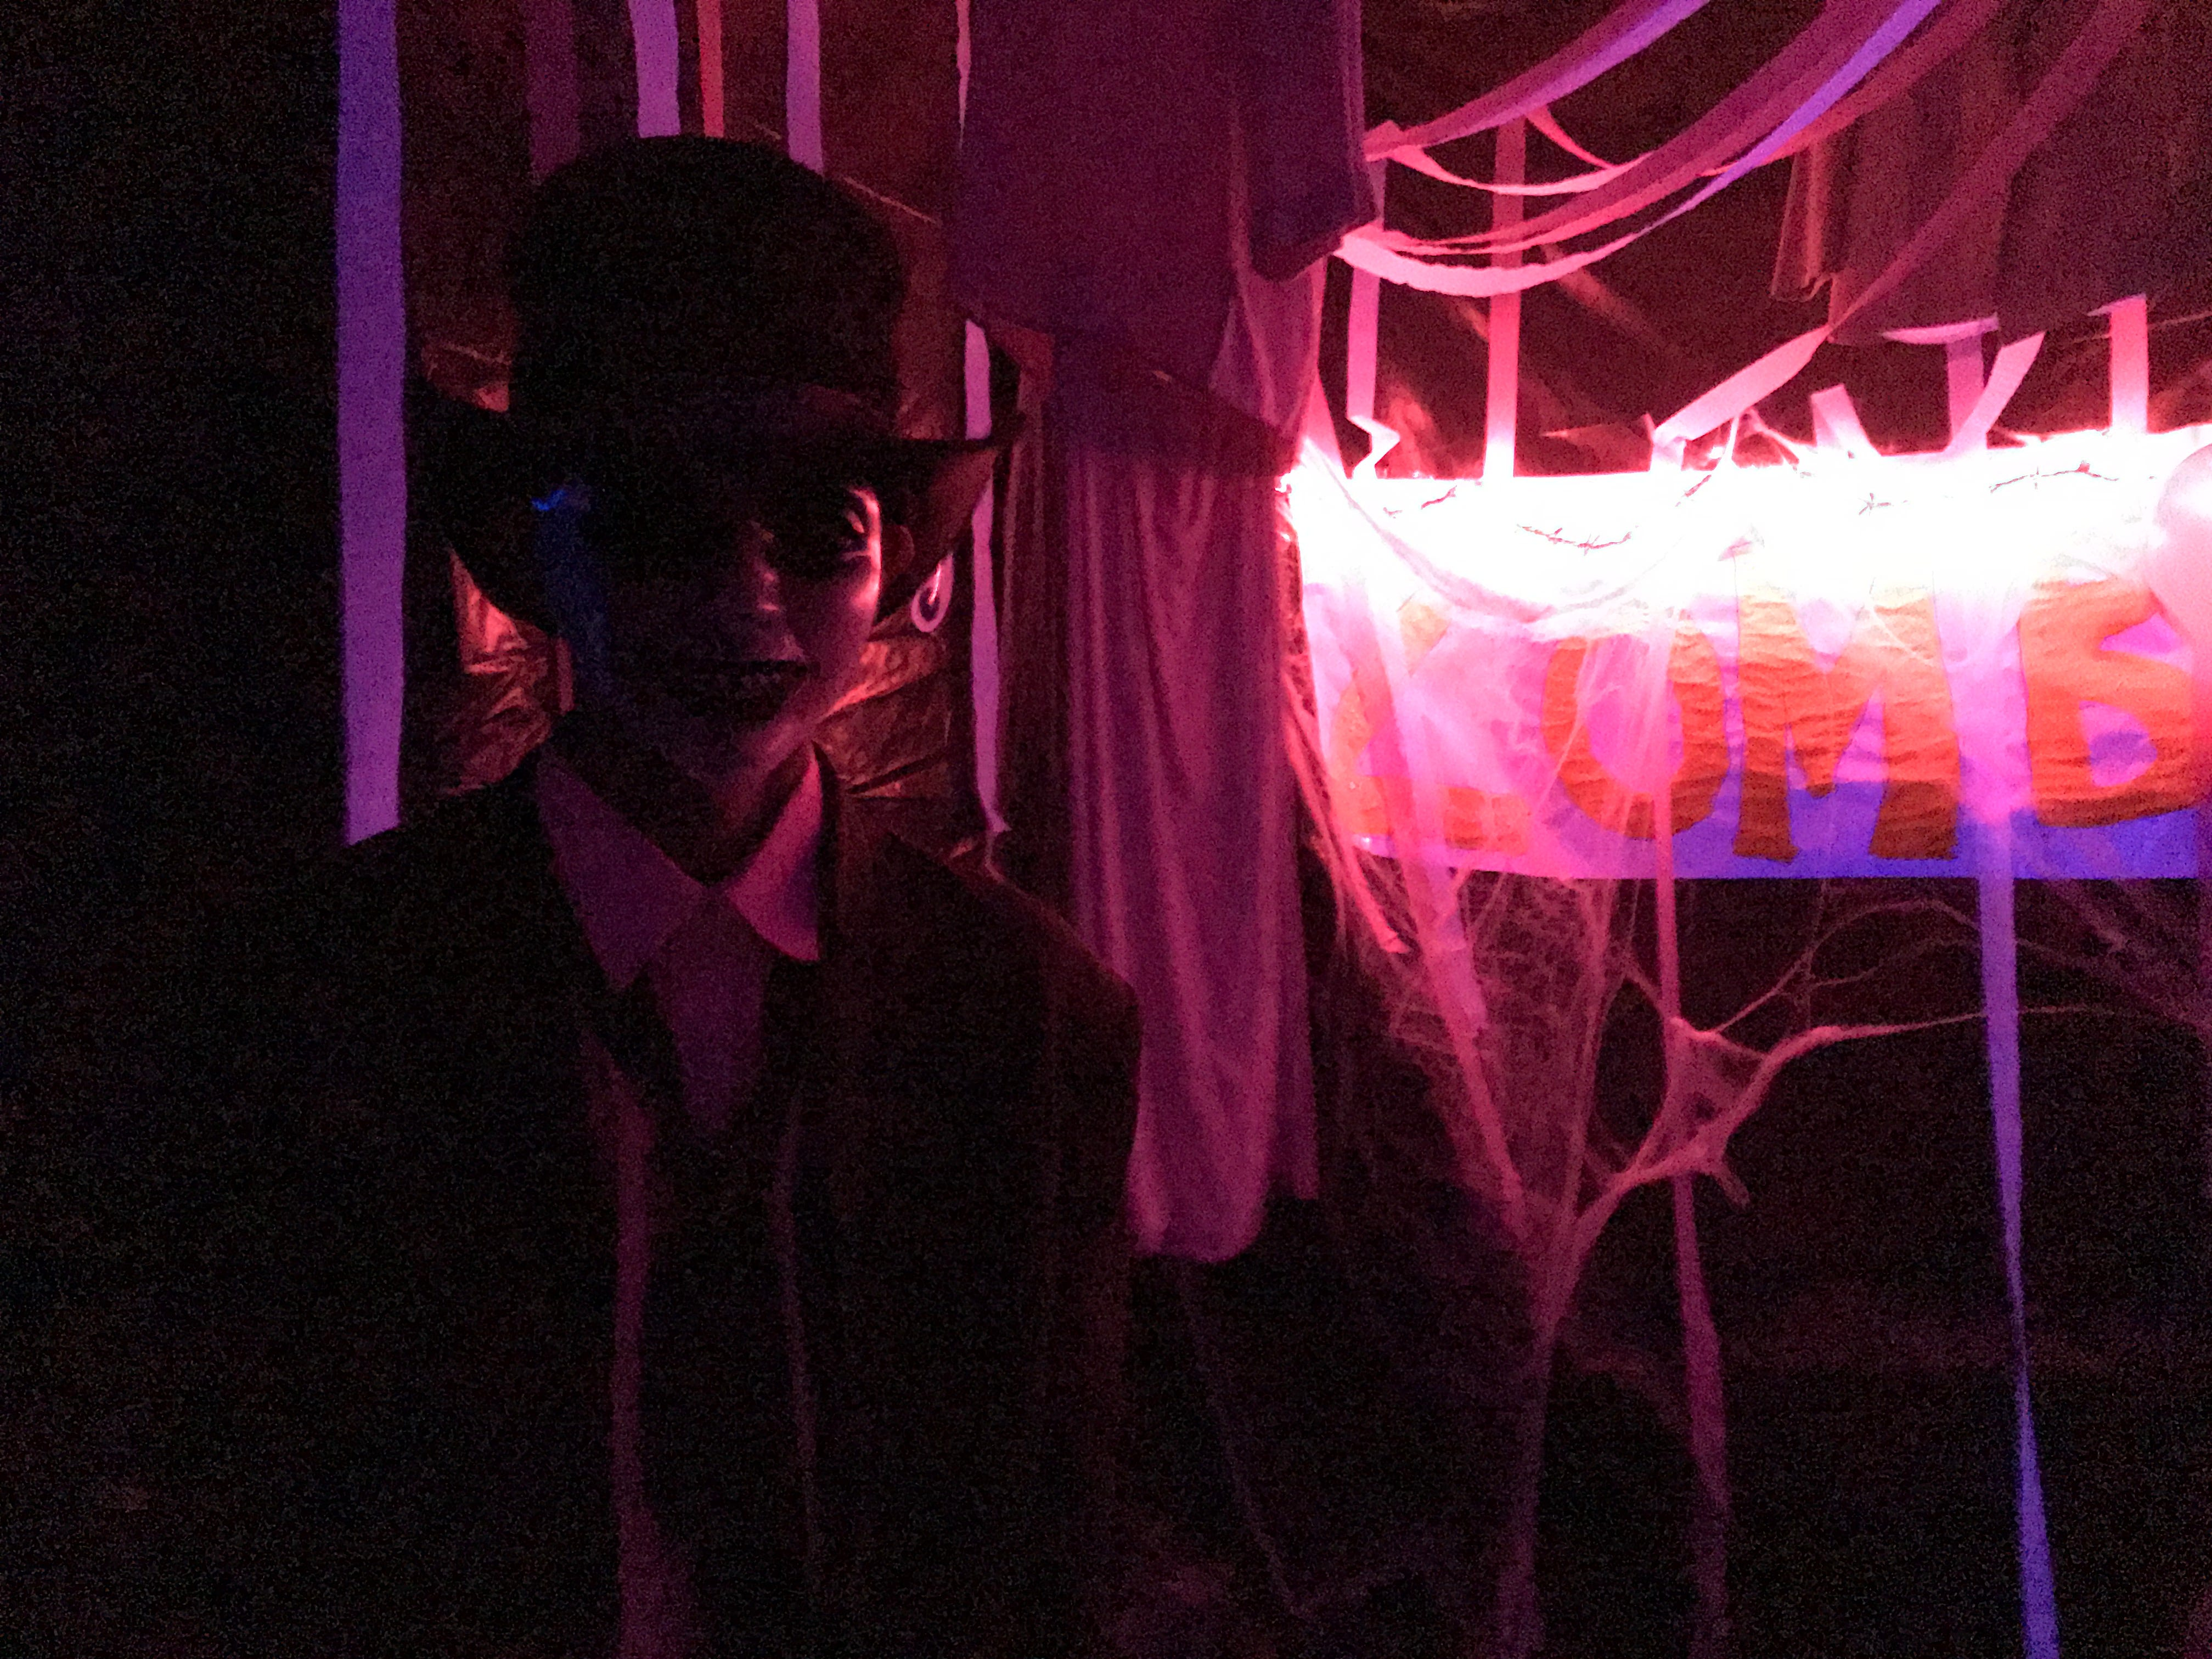 United Methodist Homes Hilltop Campus' haunted house Oct. 30-31.